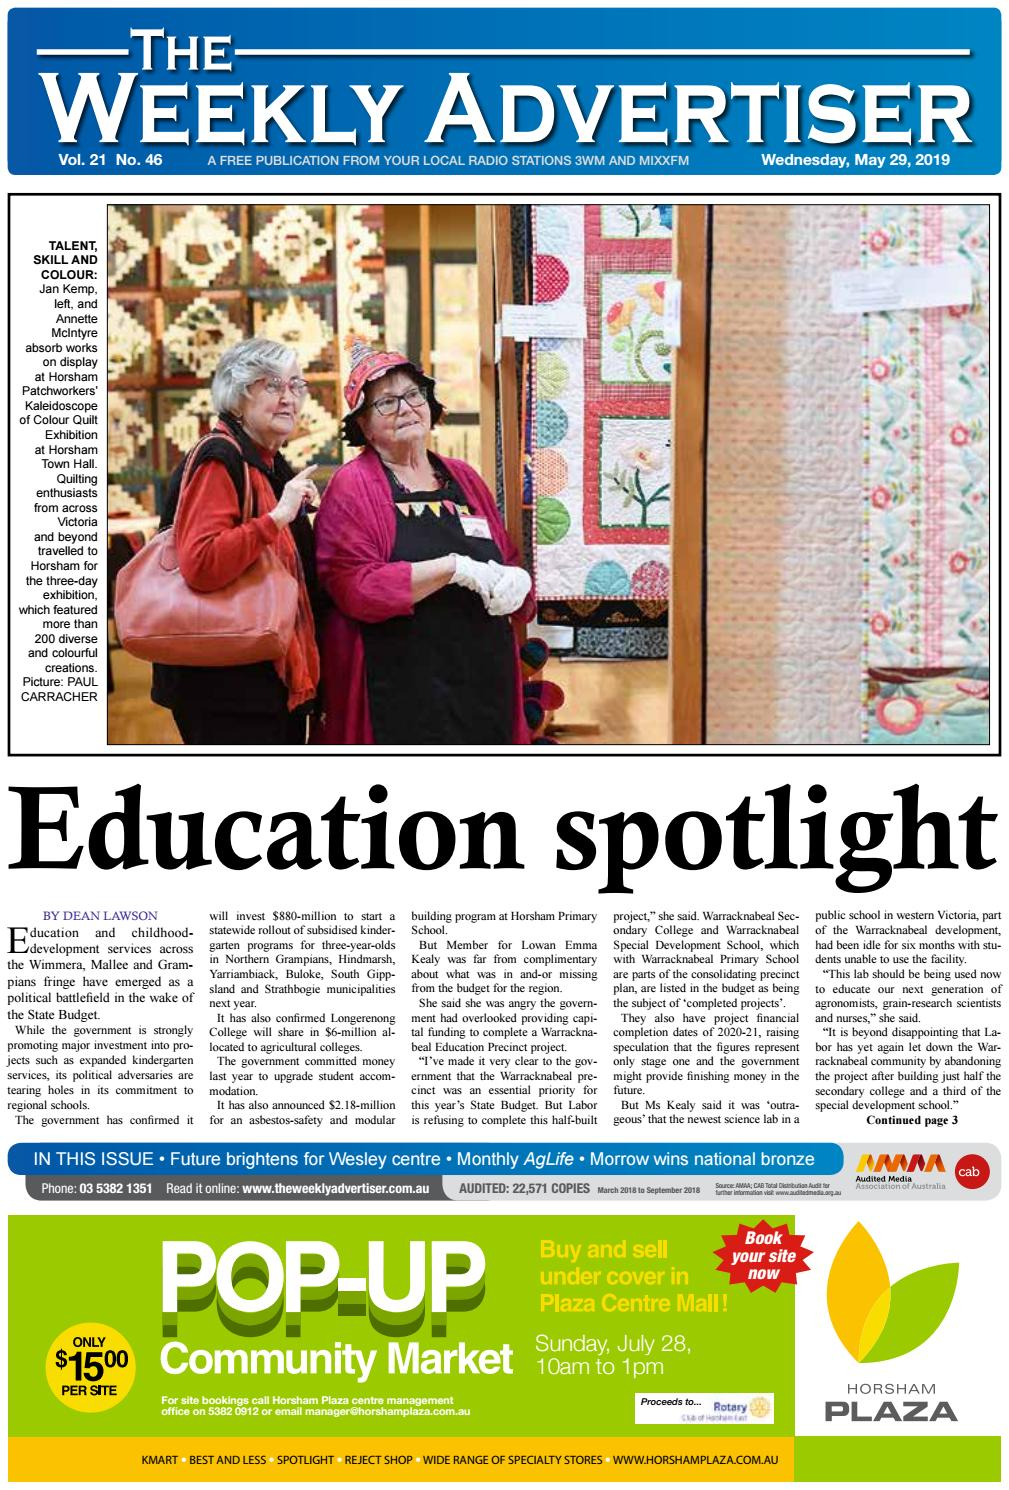 The Weekly Advertiser - Wednesday, May 29, 2019 by The